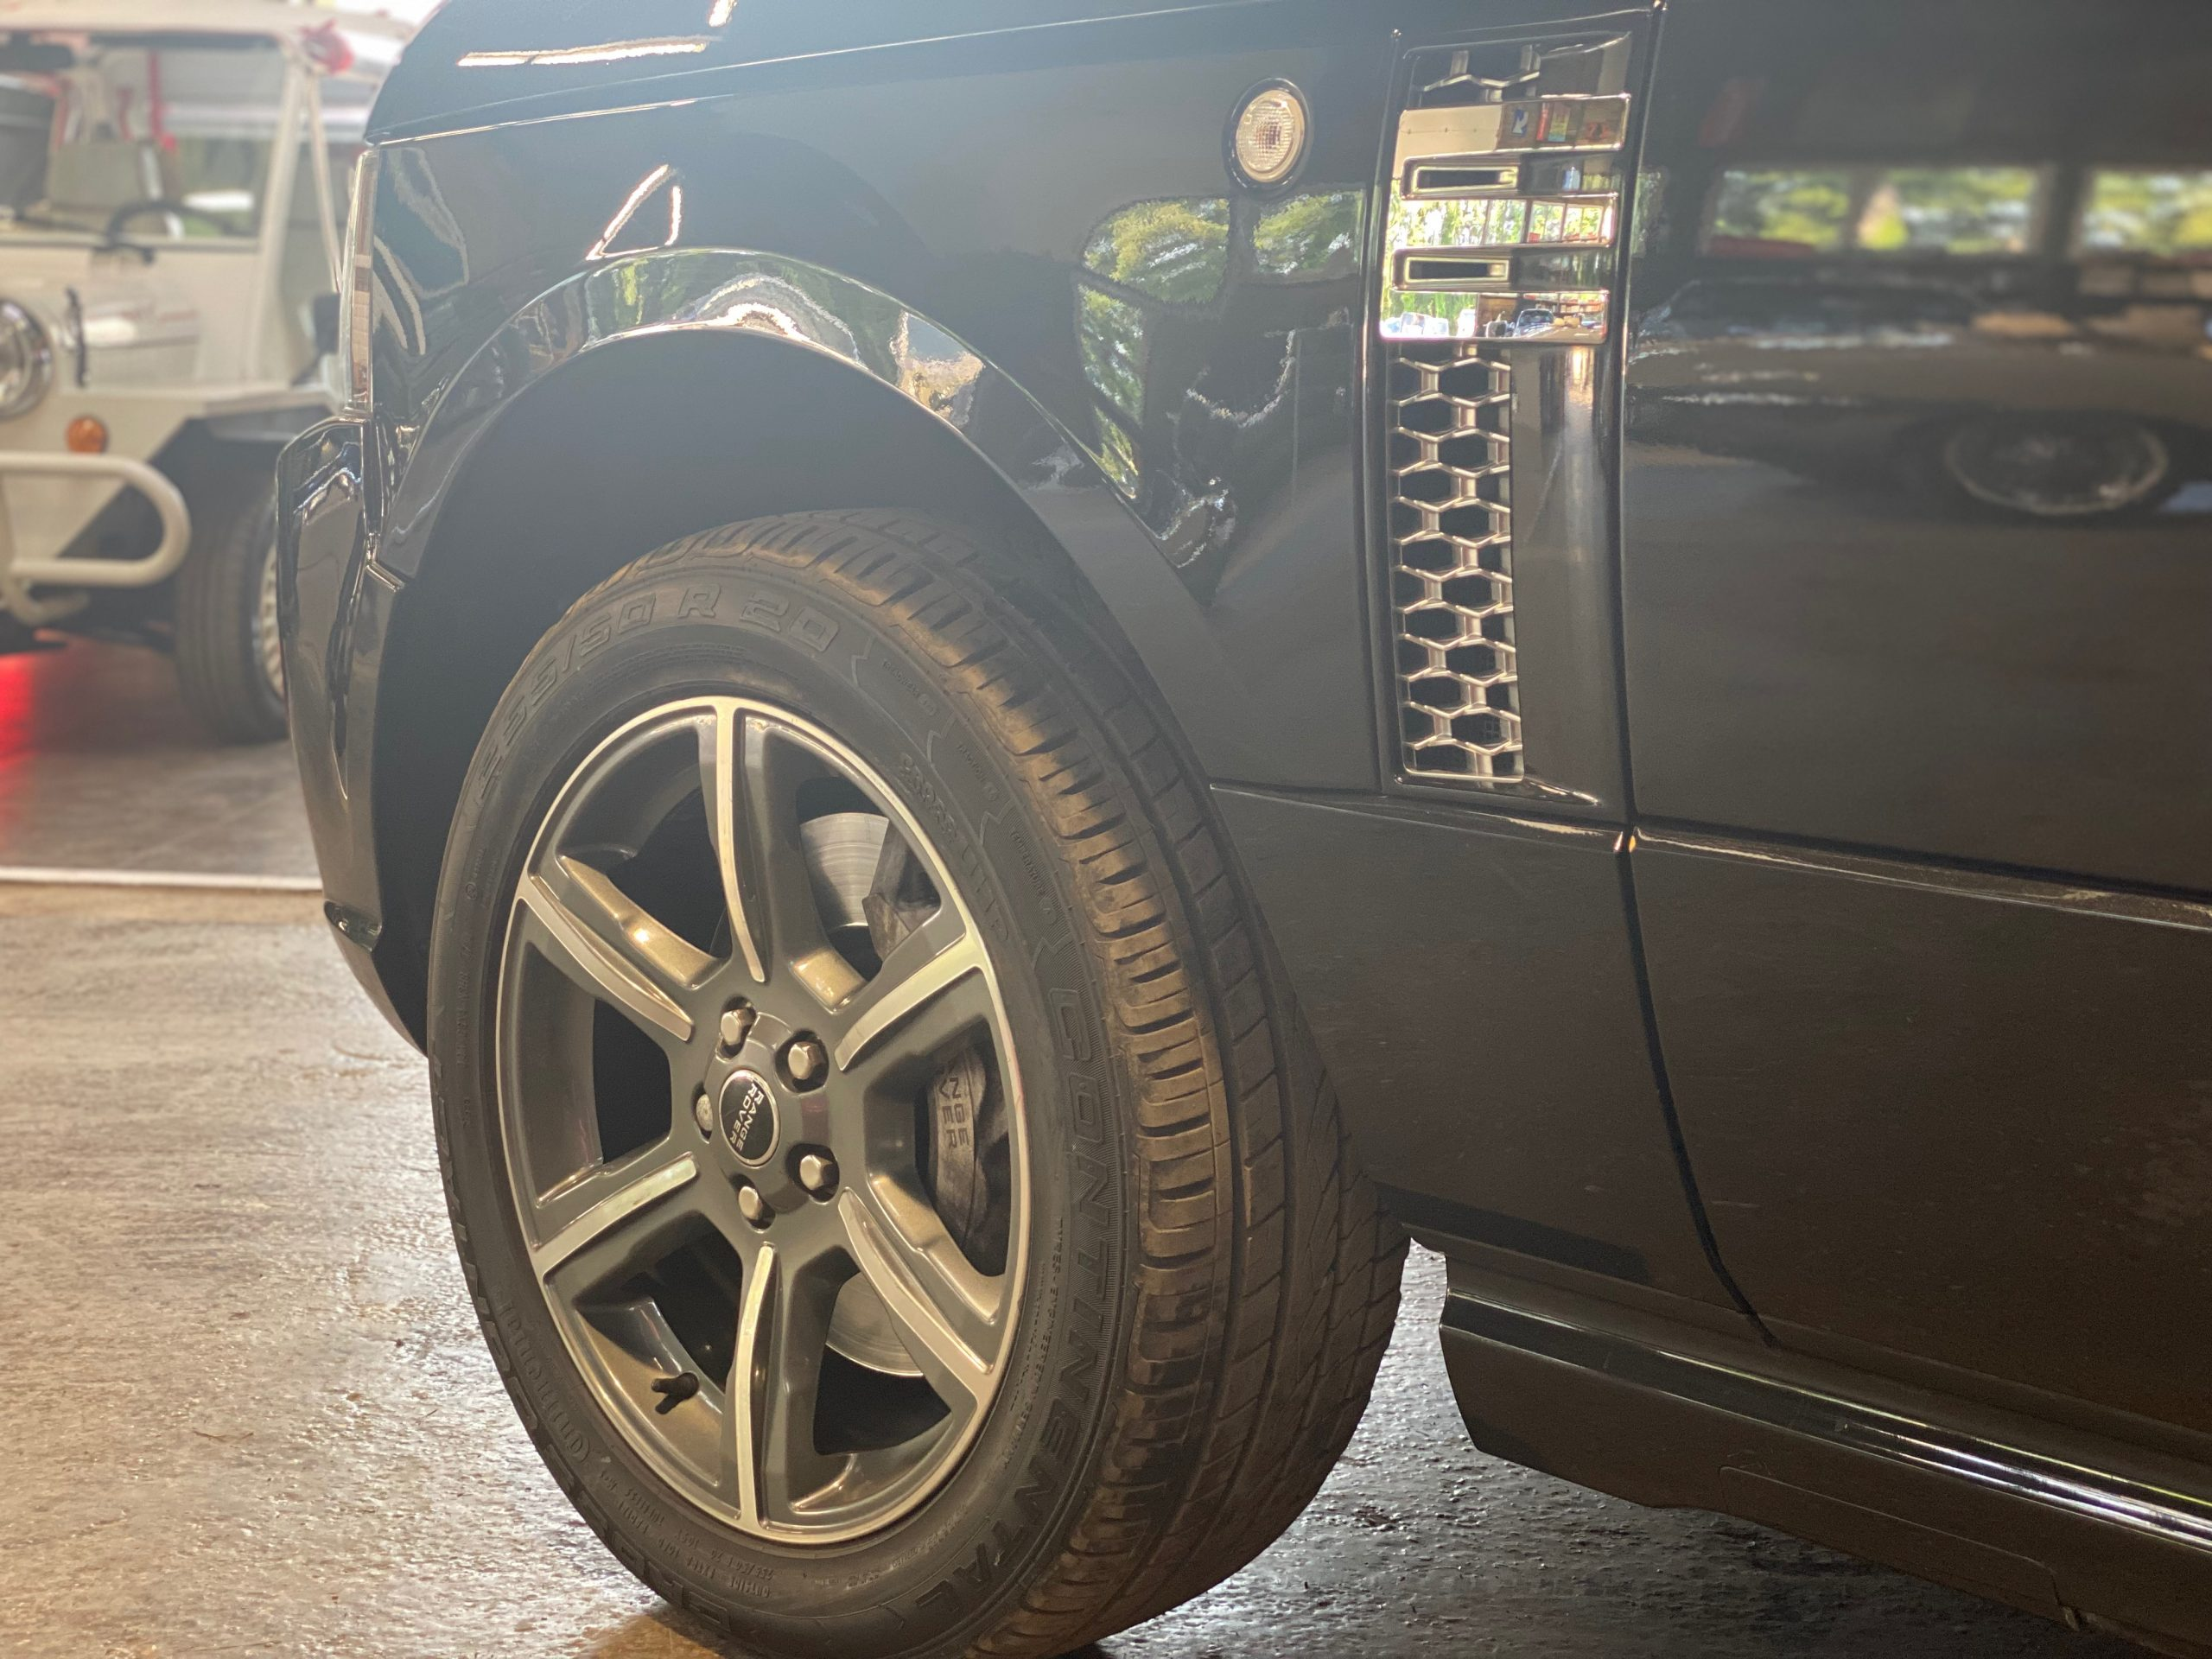 Land Rover Range Rover Supercharged V8 5.0 Autobiography